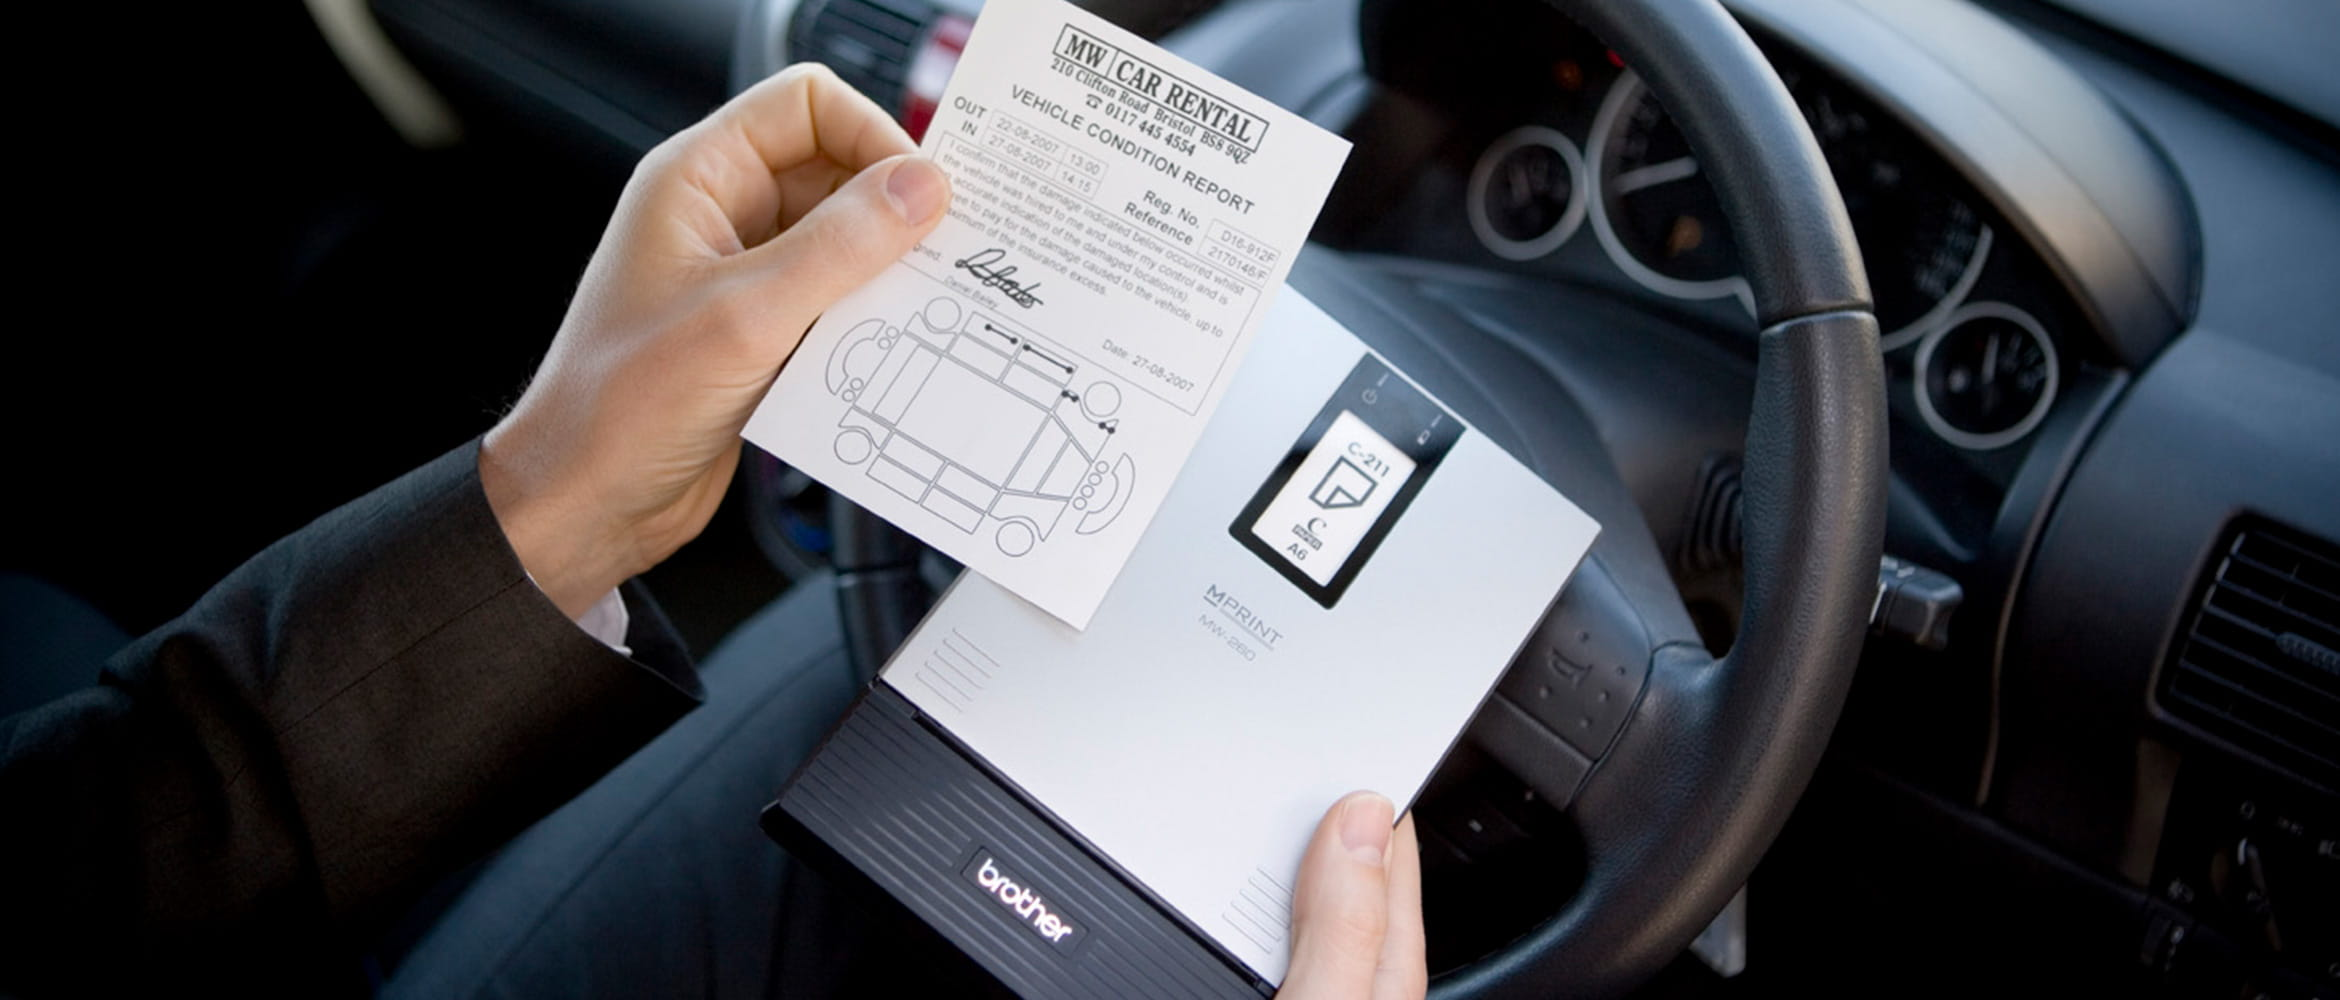 Individual in car using Brother MW range  mobile printer